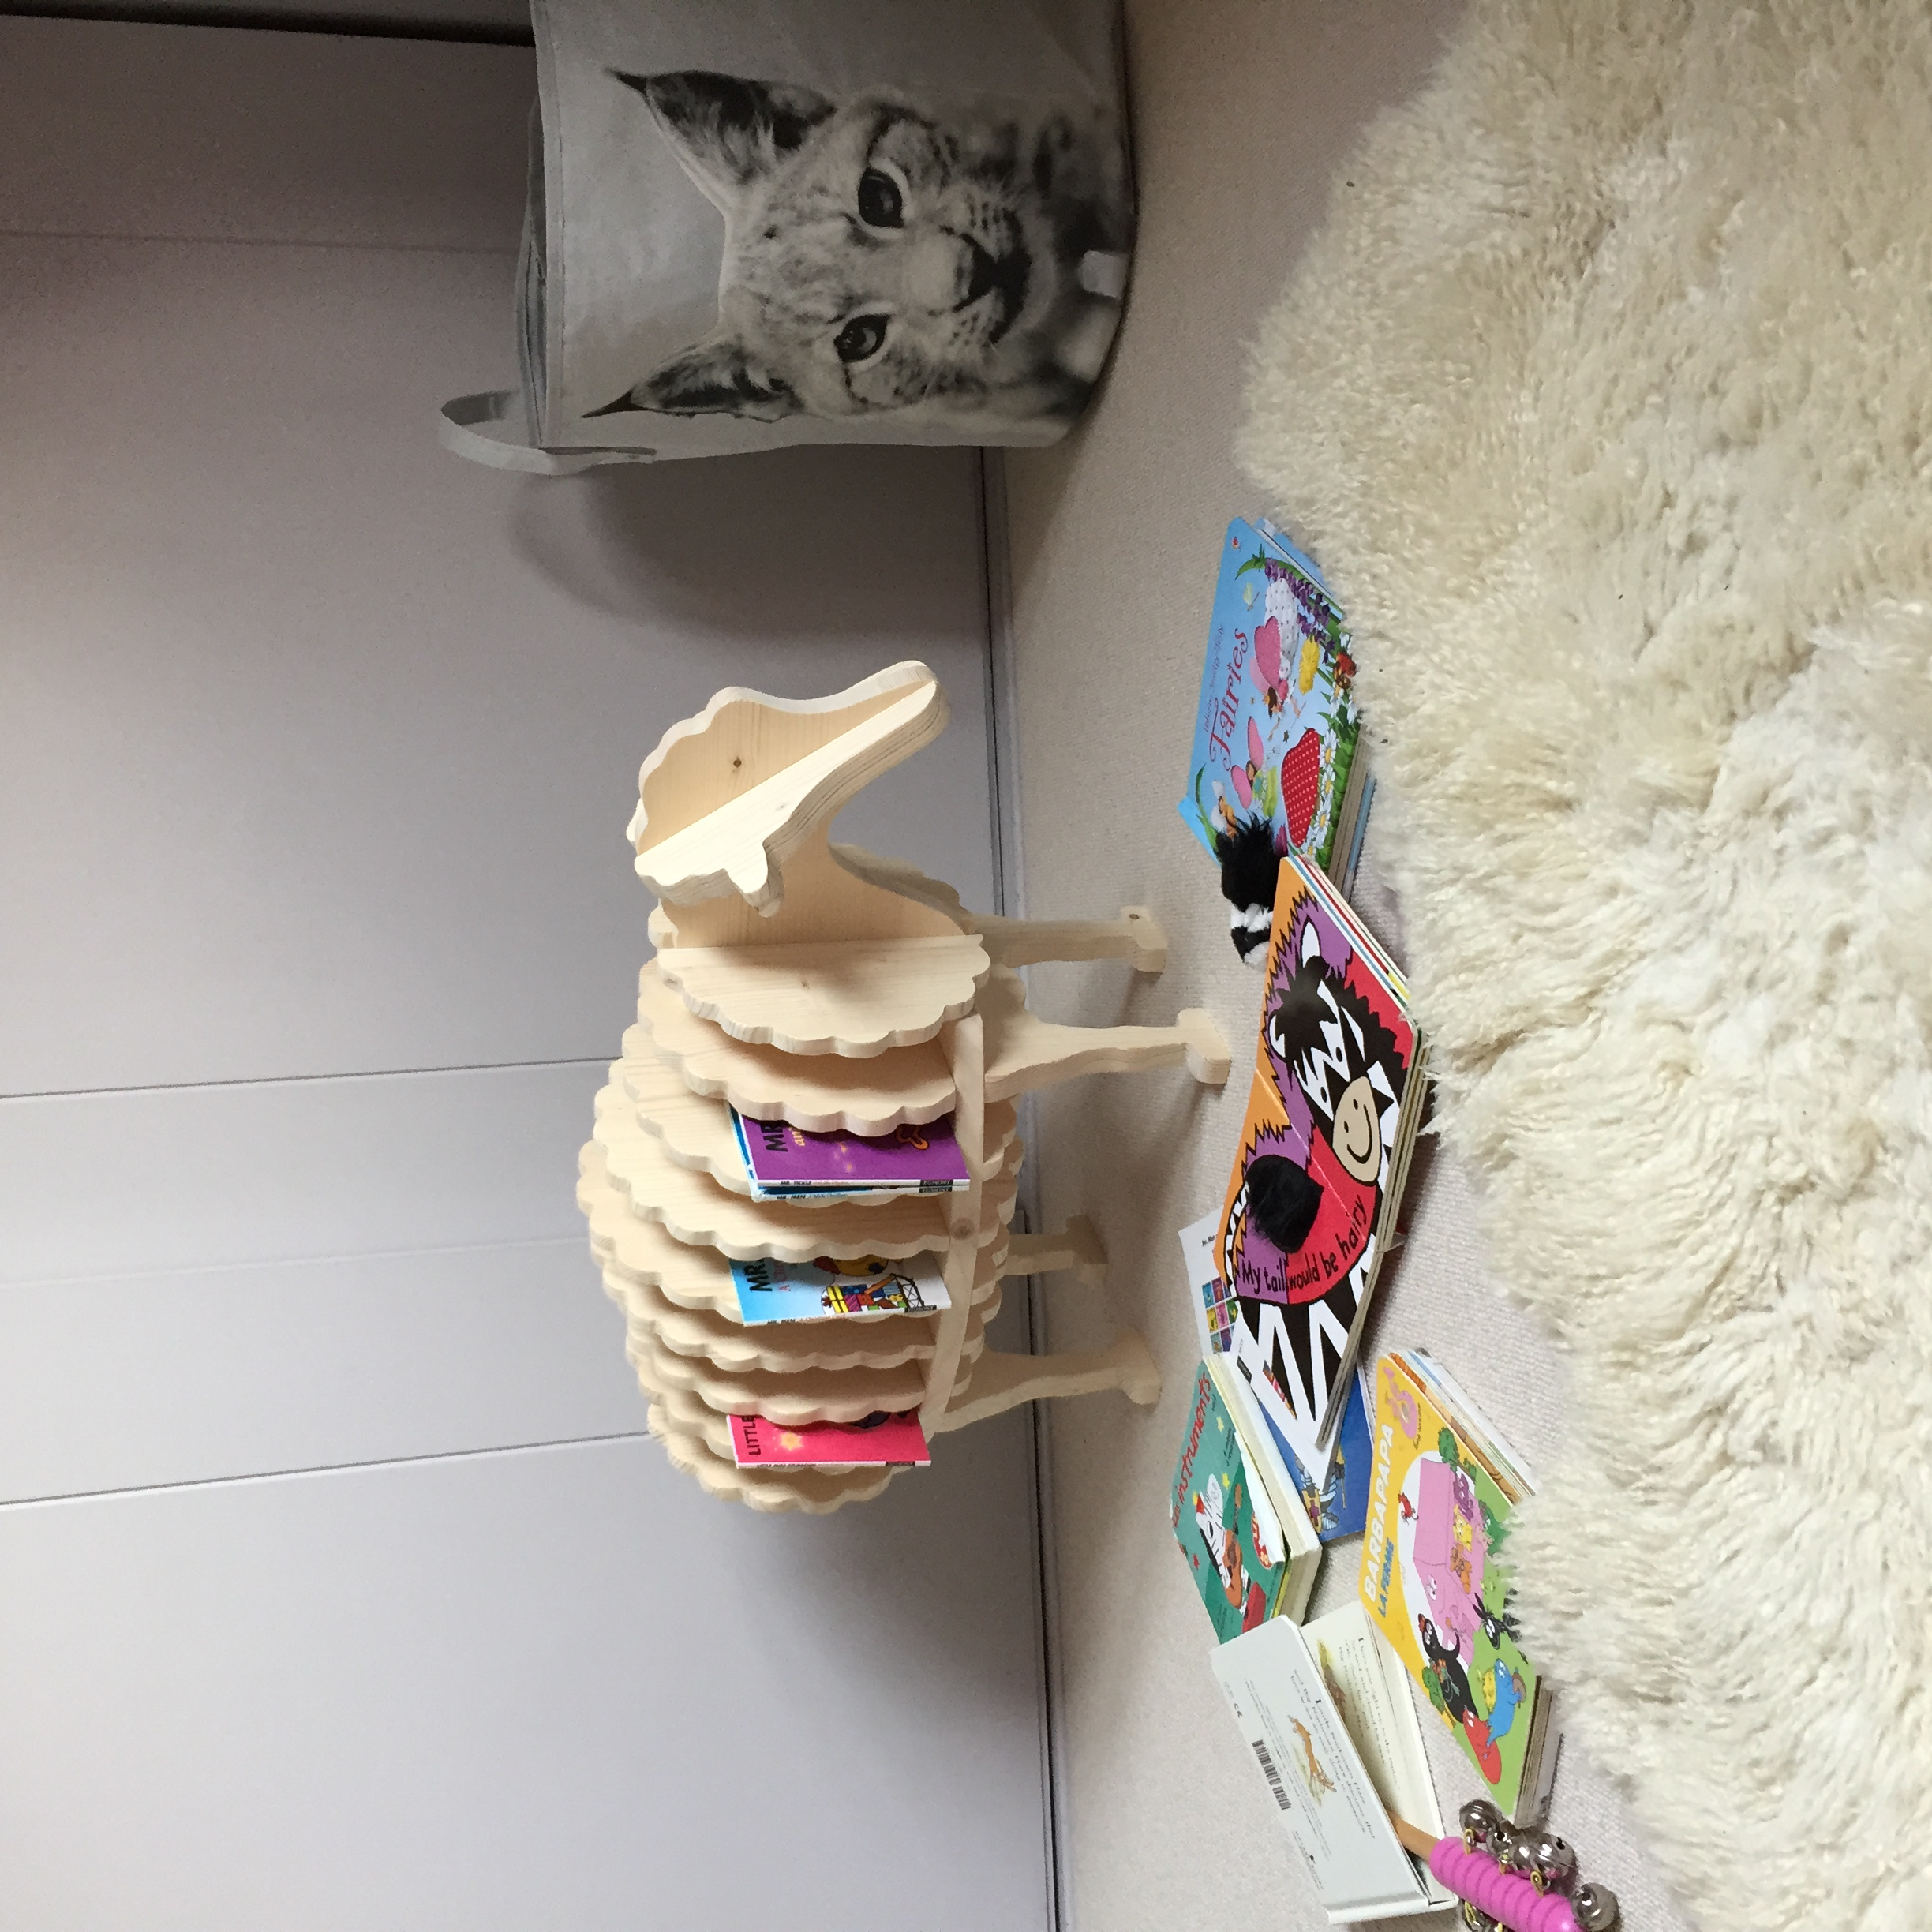 The Baa Baa bookshelf in action in Stella's nursery